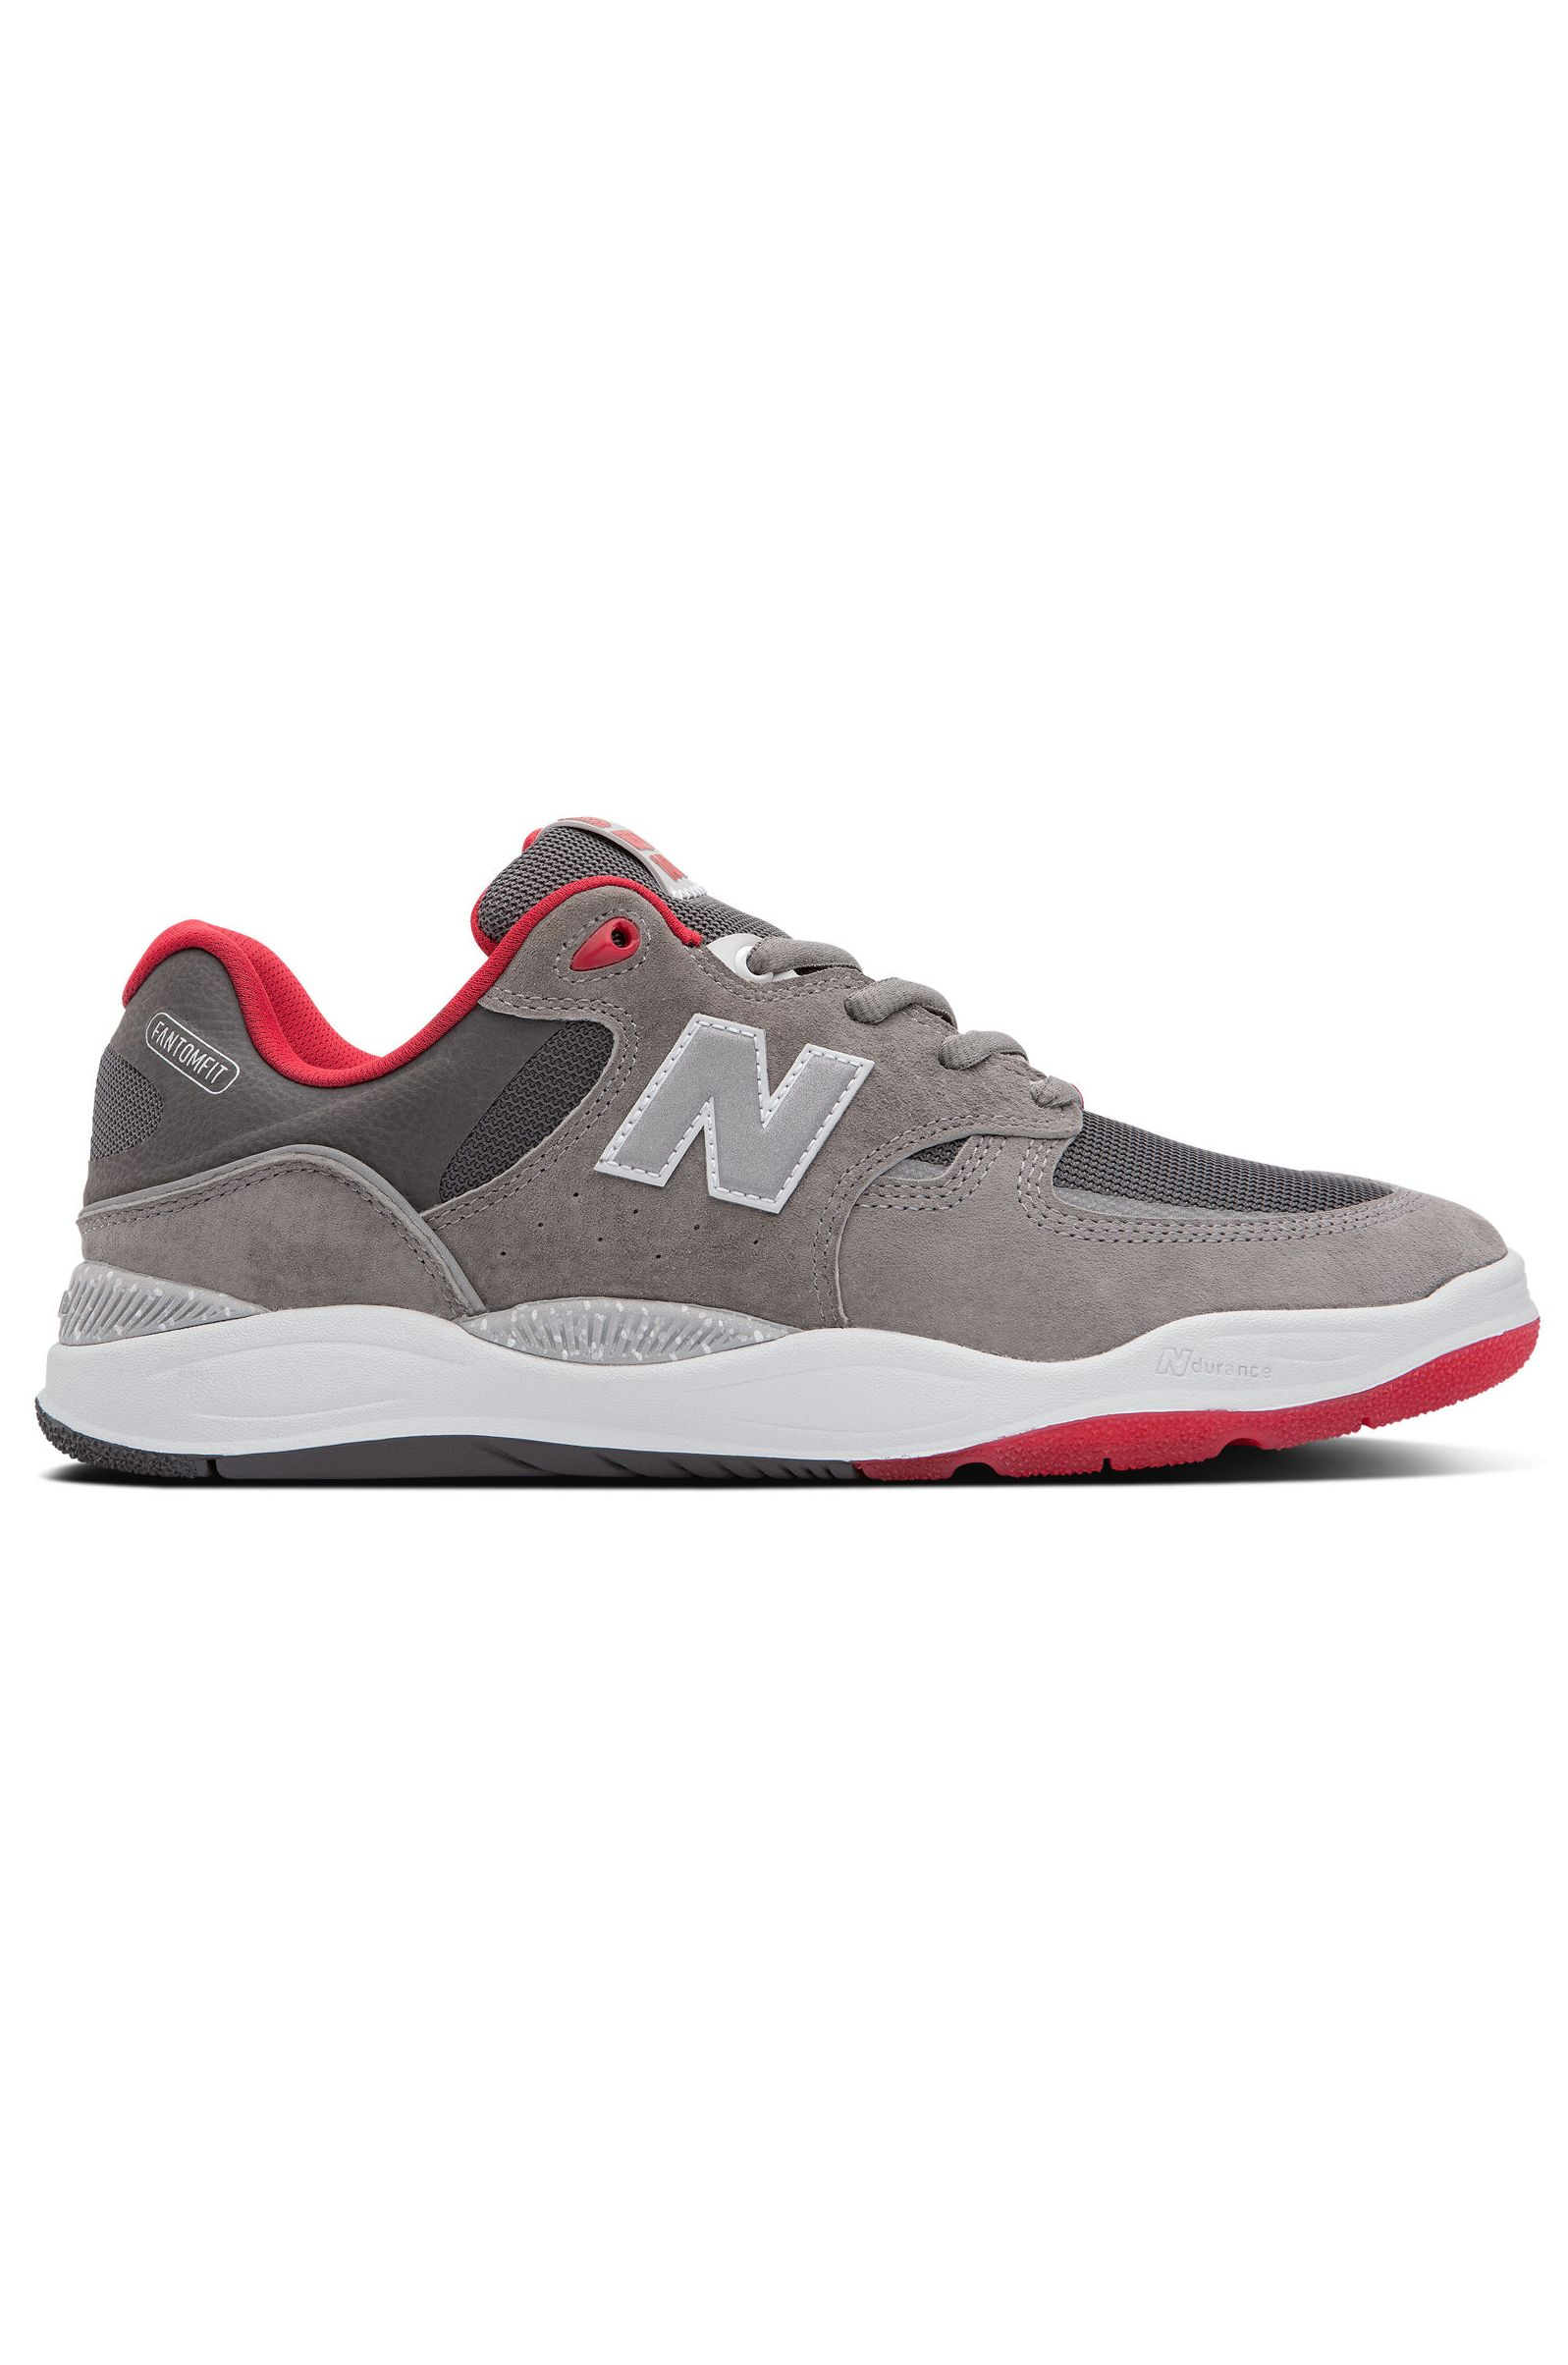 New Balance Shoes NM1010 Marblehead